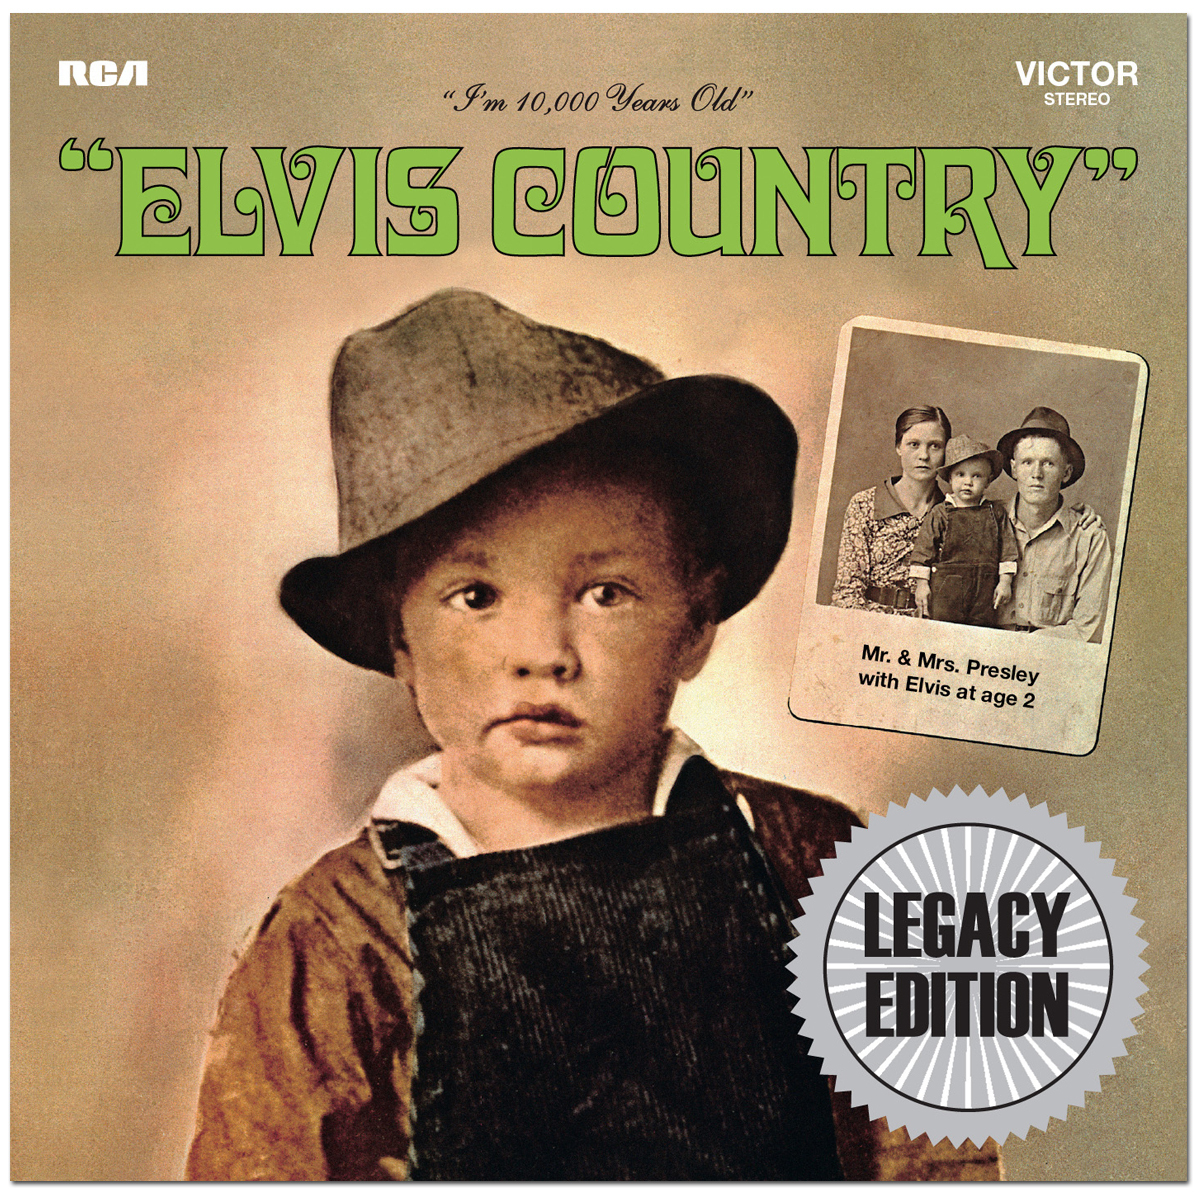 Elvis Country Legacy Edition 2-CD Set